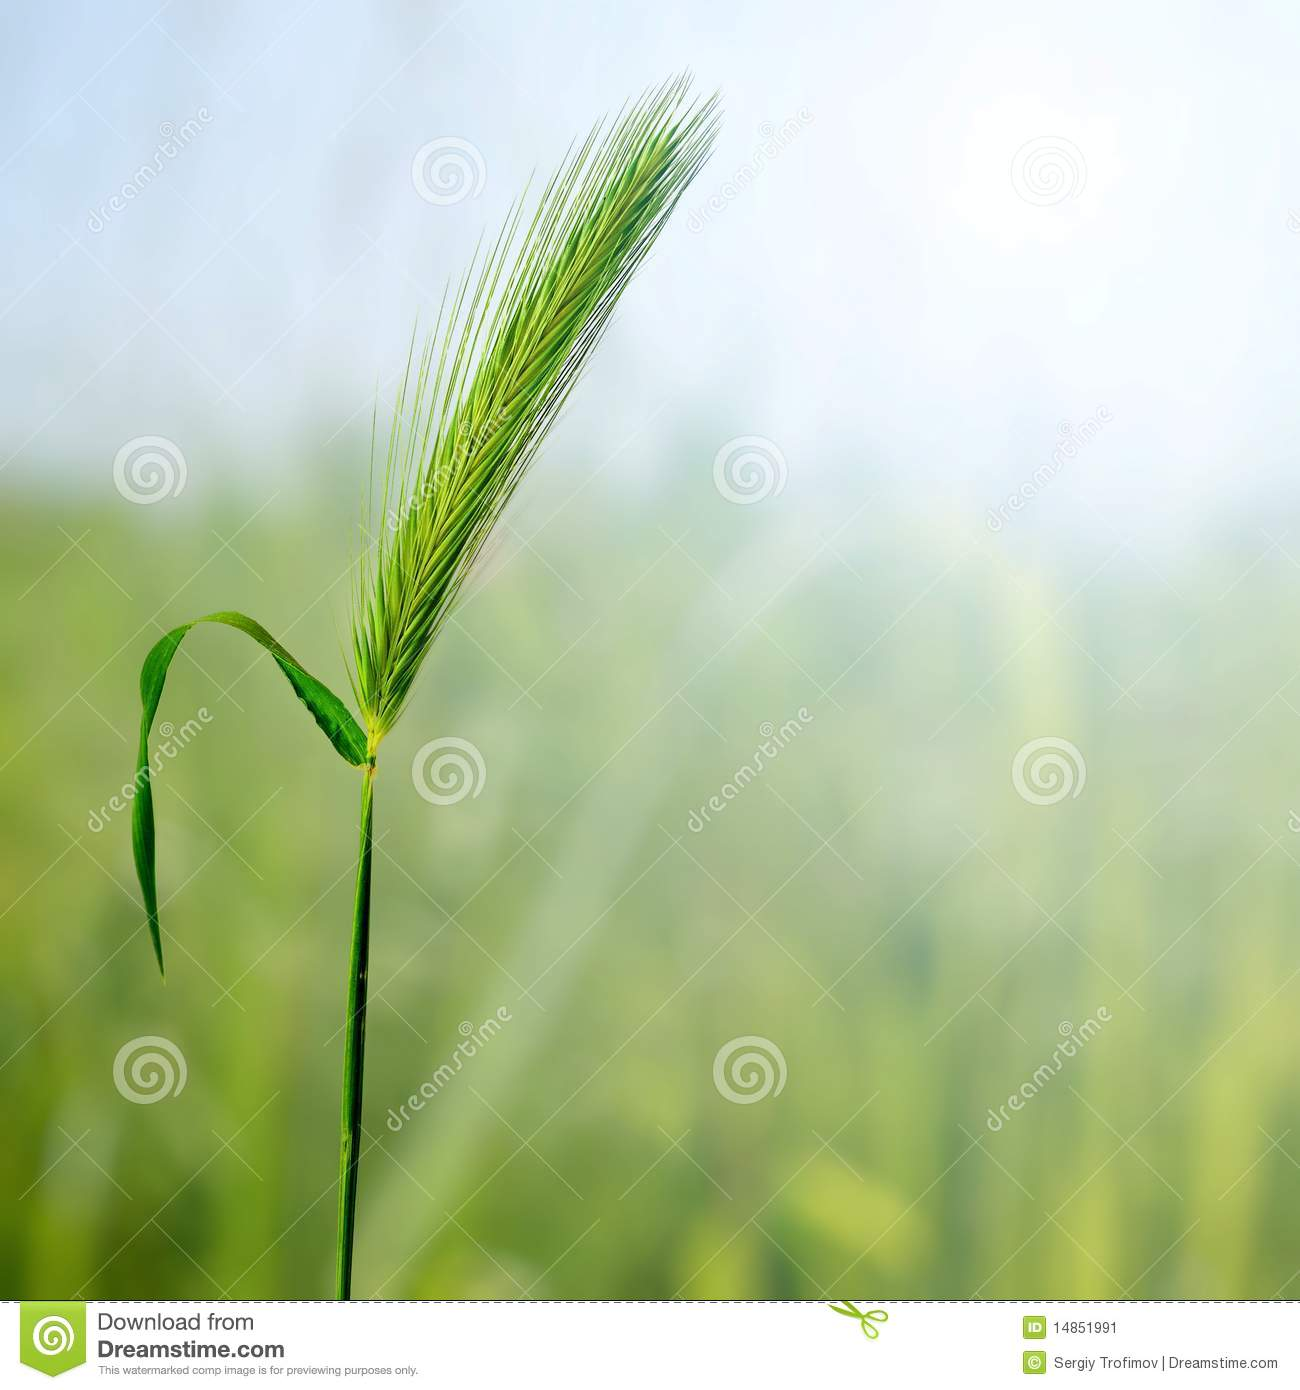 Green cereal plant